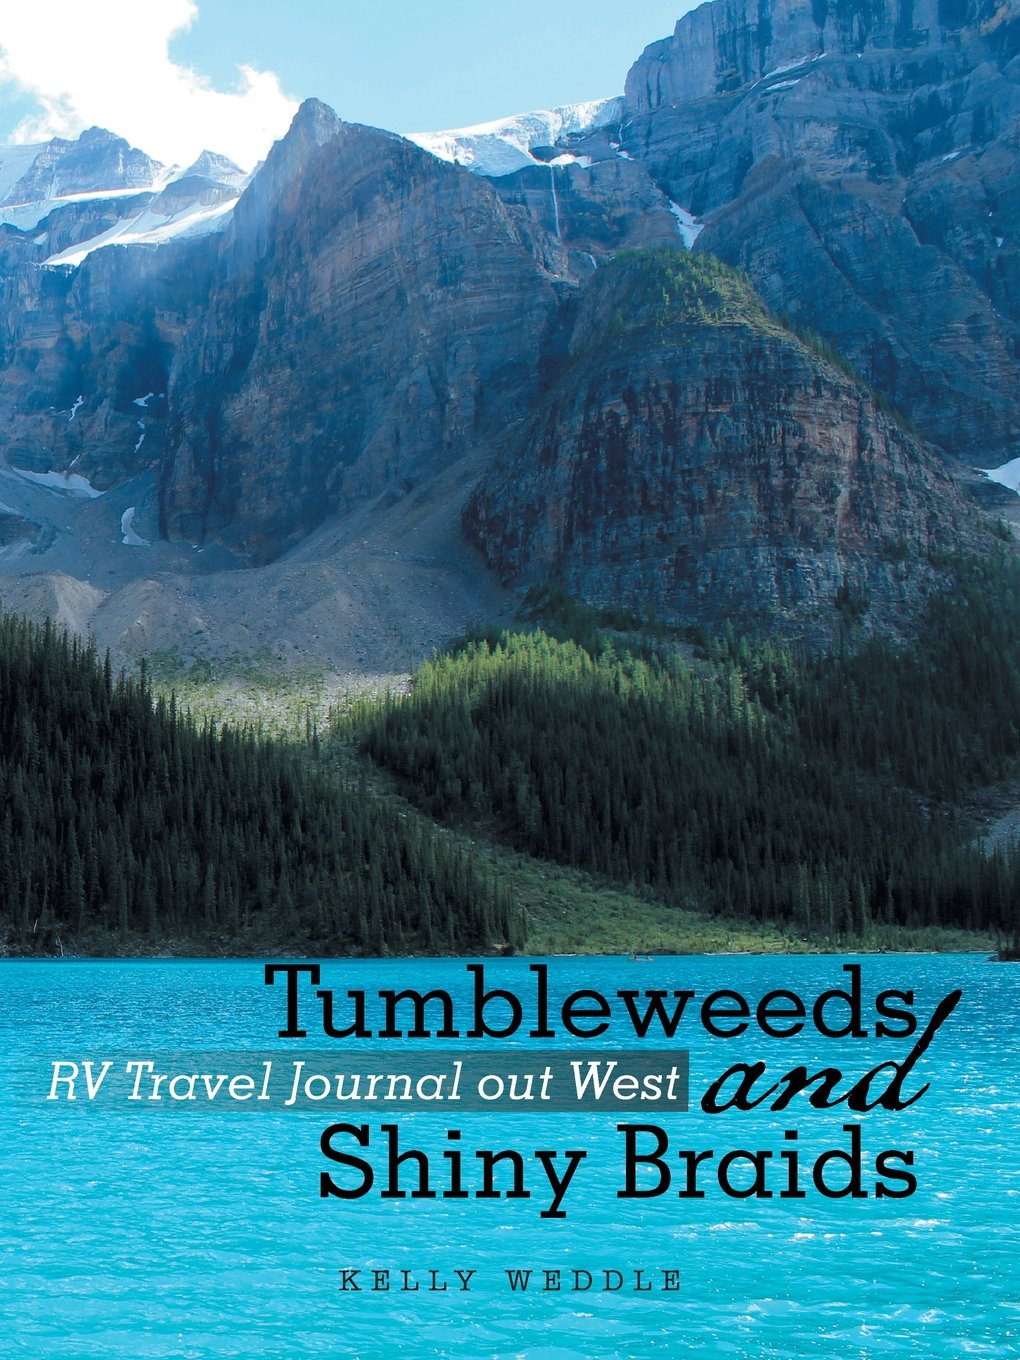 Tumbleweeds and Shiny Braids: RV Travel Journal out West PDF